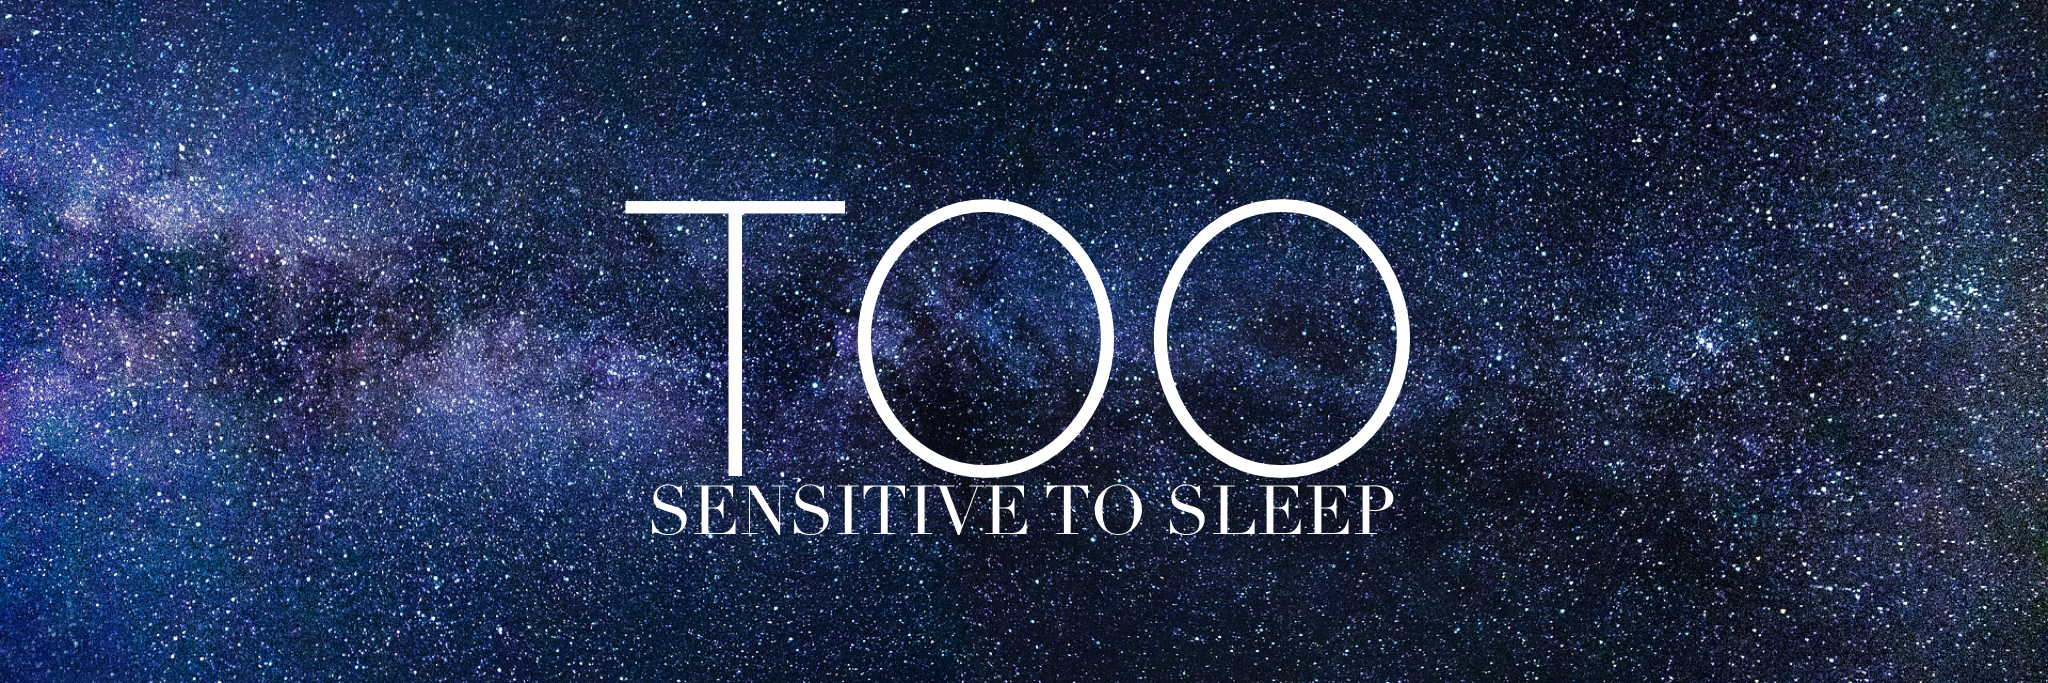 Too-sensitive-to-sleep